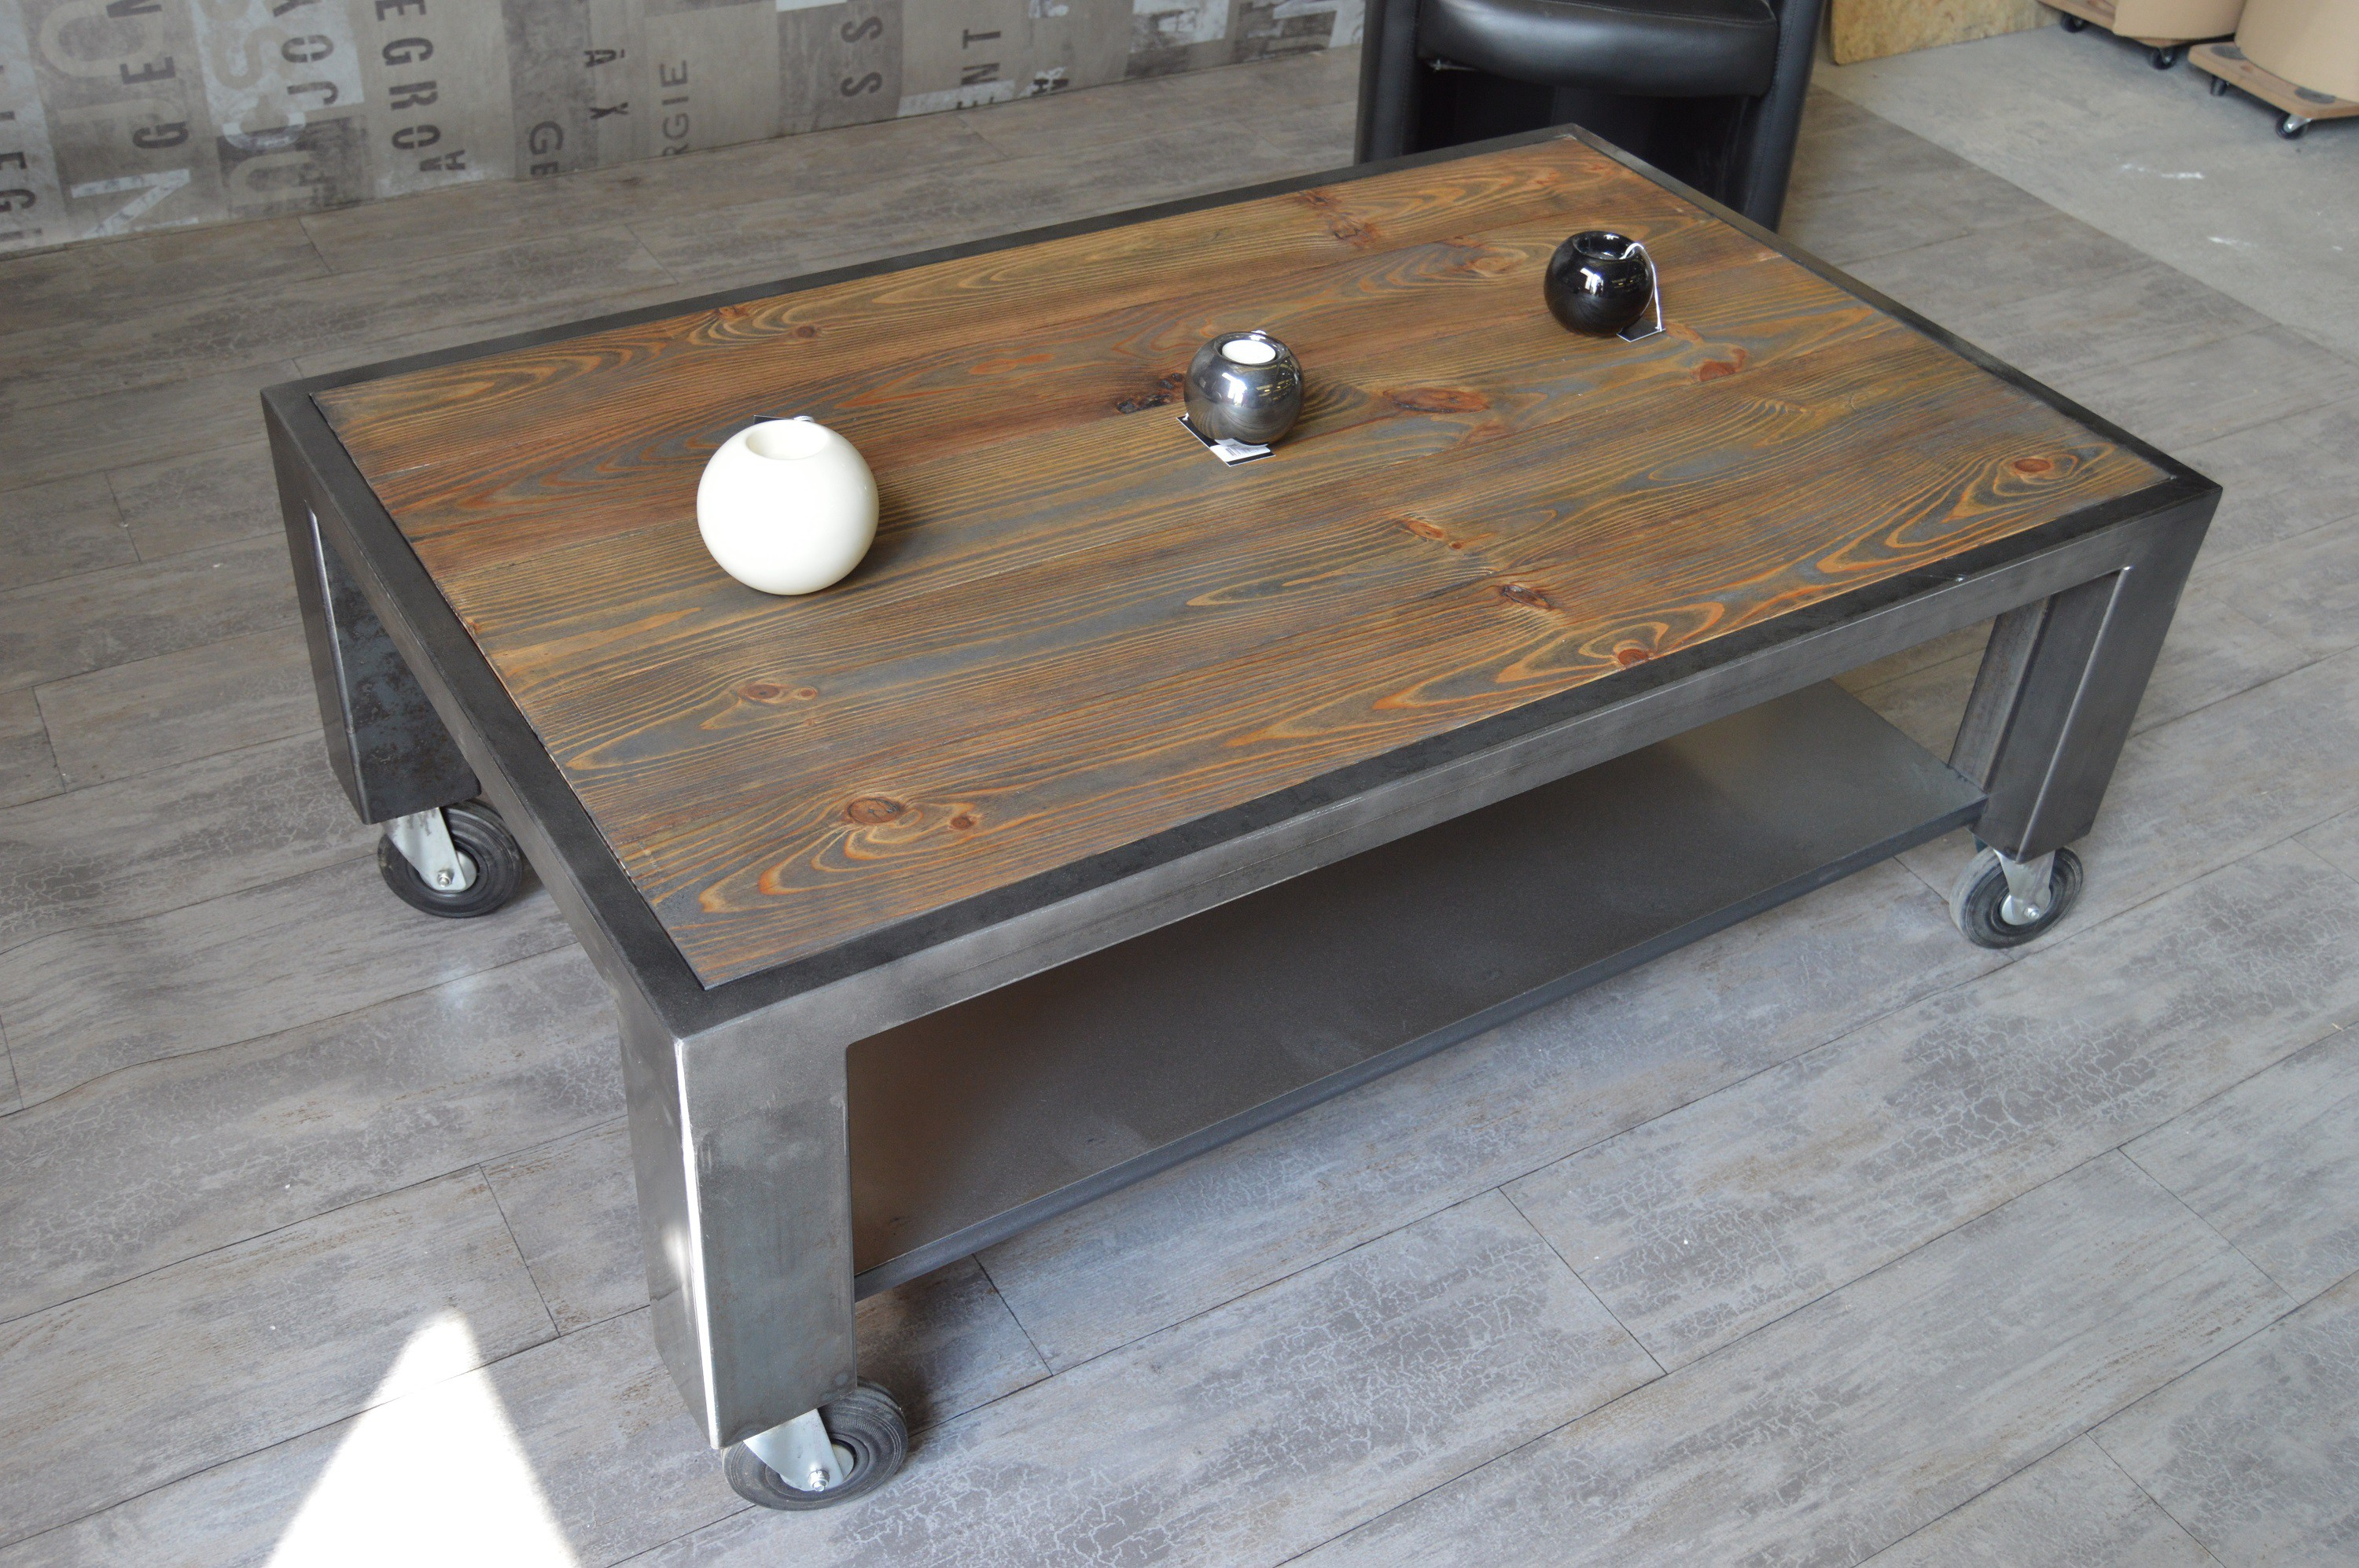 Table basse roulettes industrielles for Table basse roulette industrielle